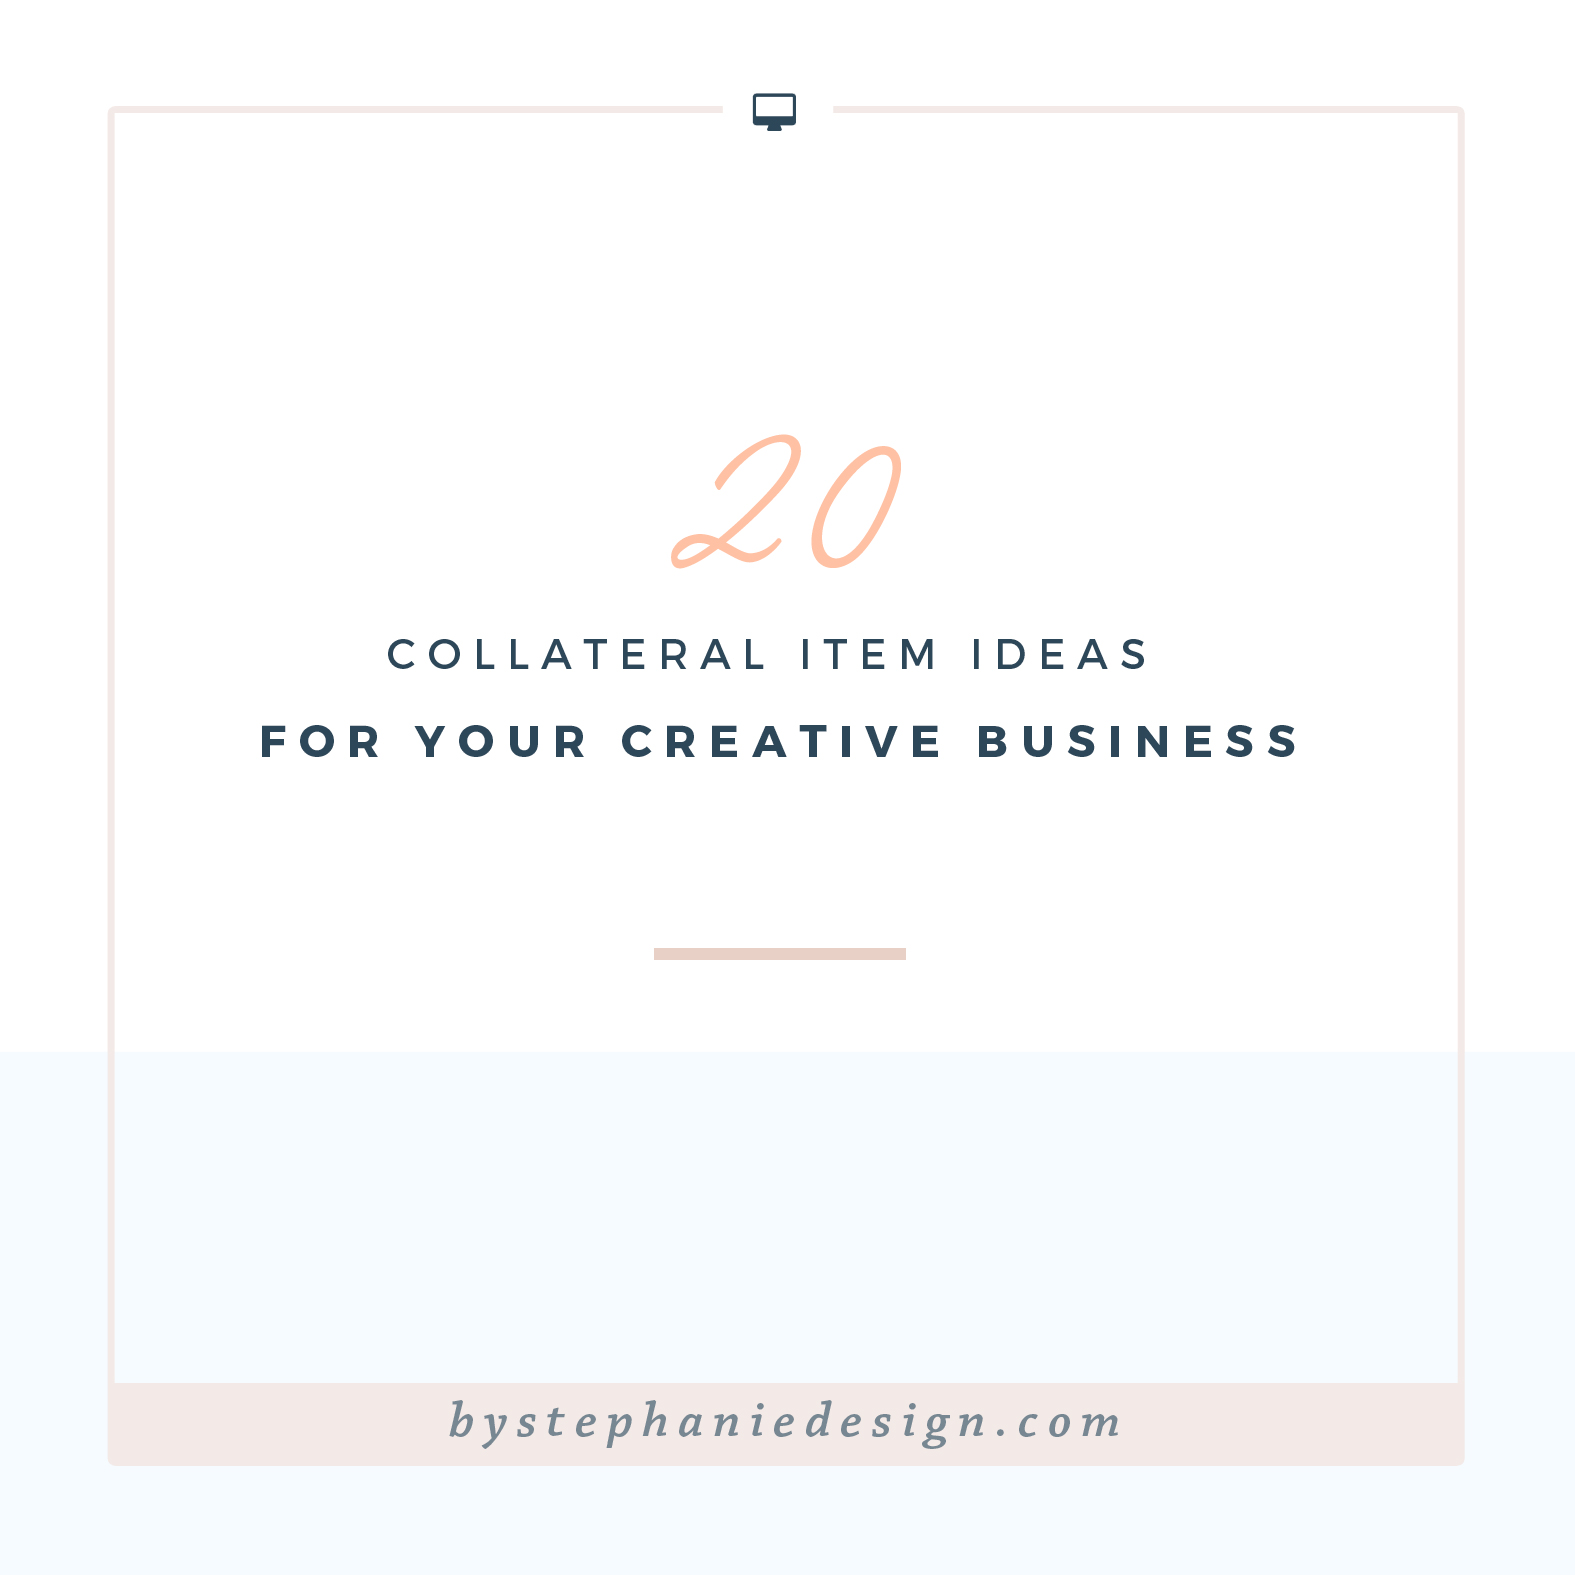 20 collateral item ideas for your creative business